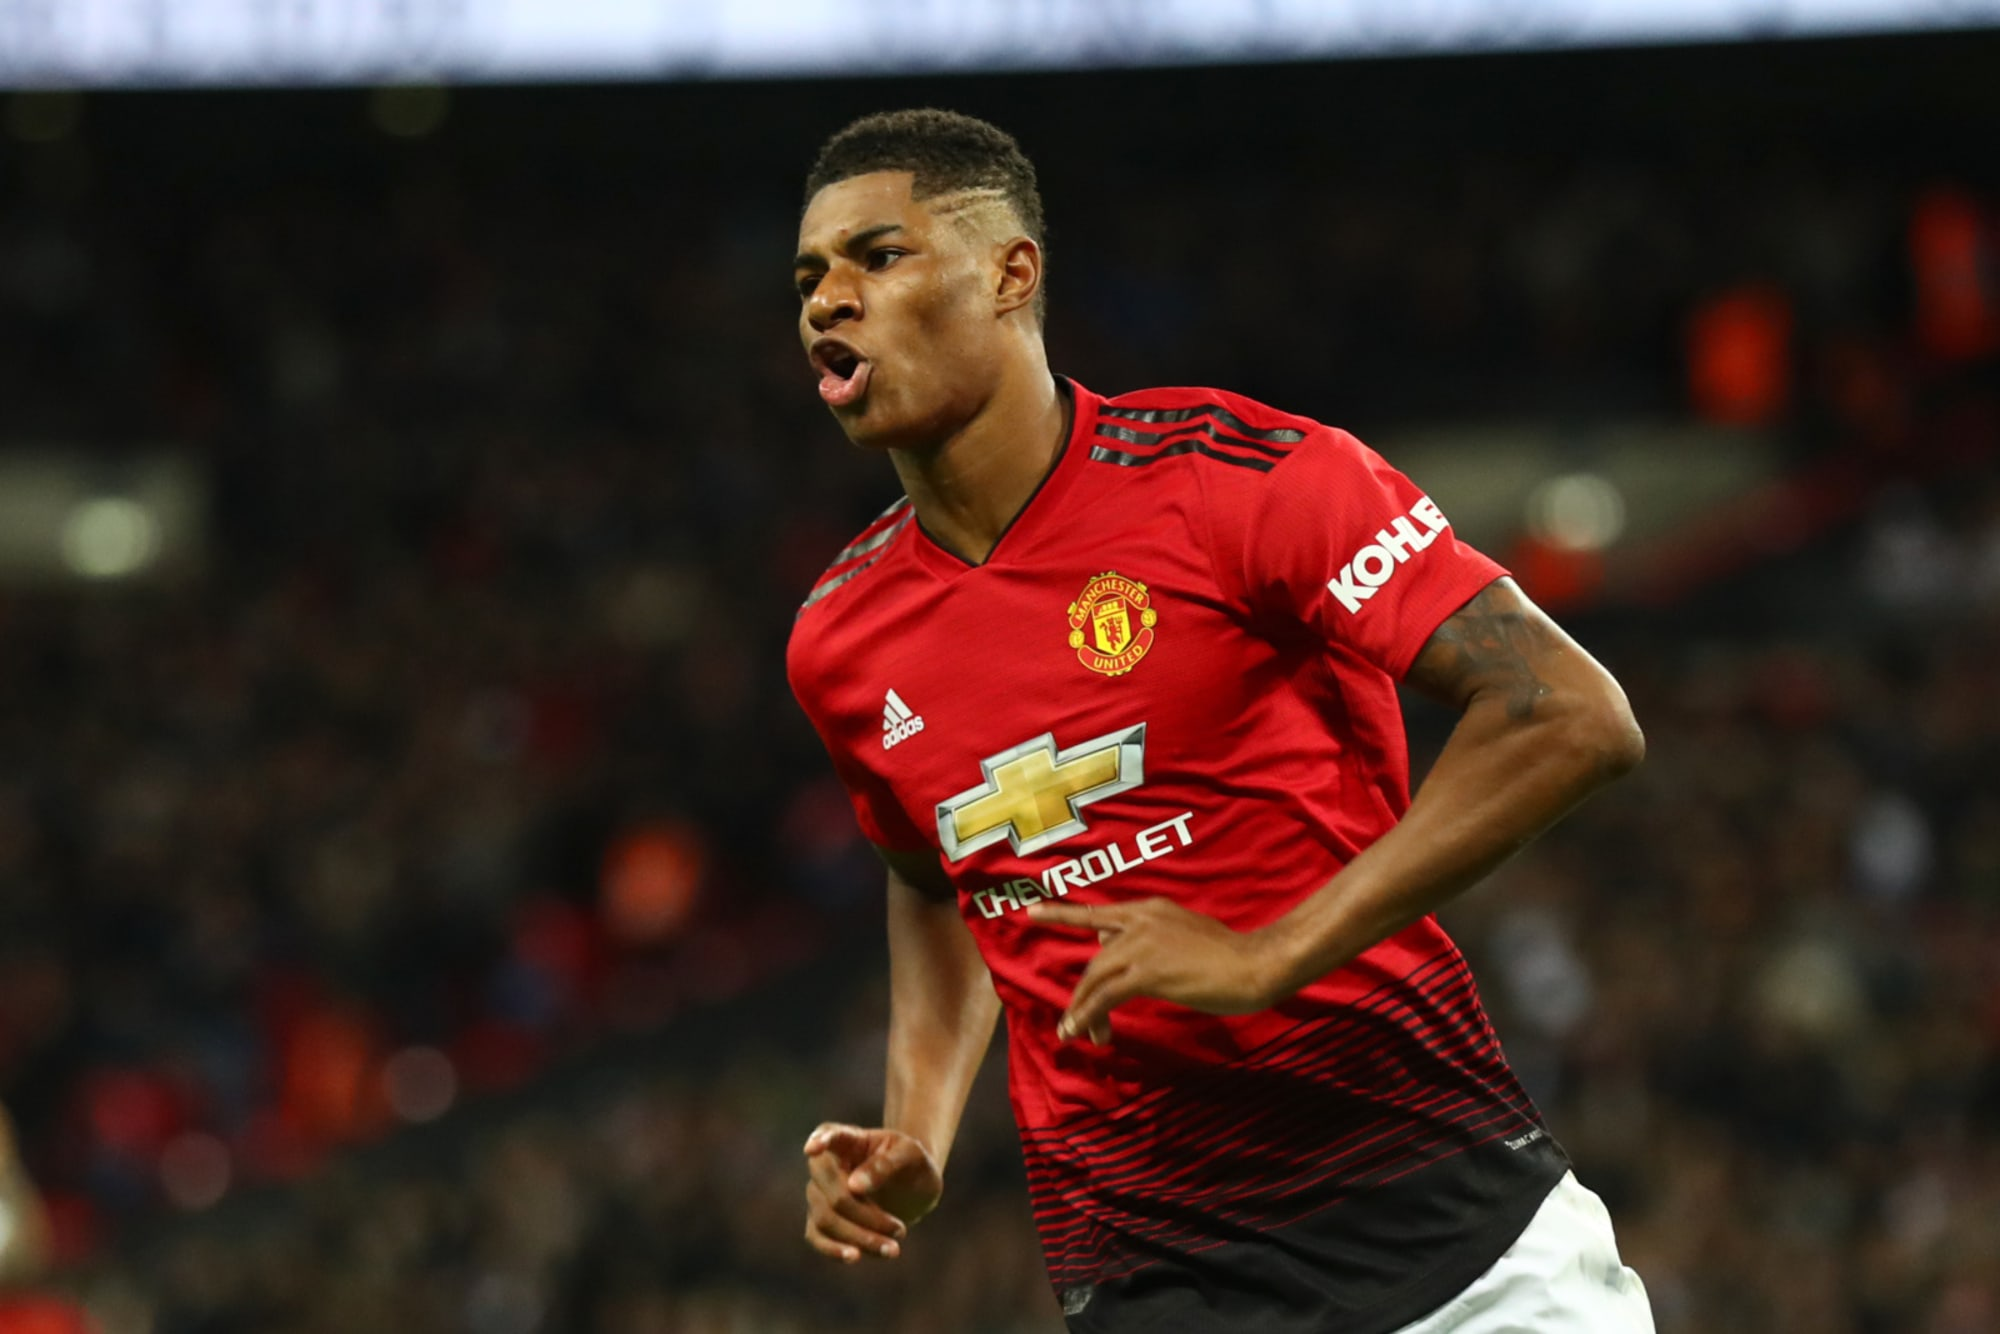 Marcus Rashford Can Prove He Is World Class Against Psg In The Champions League